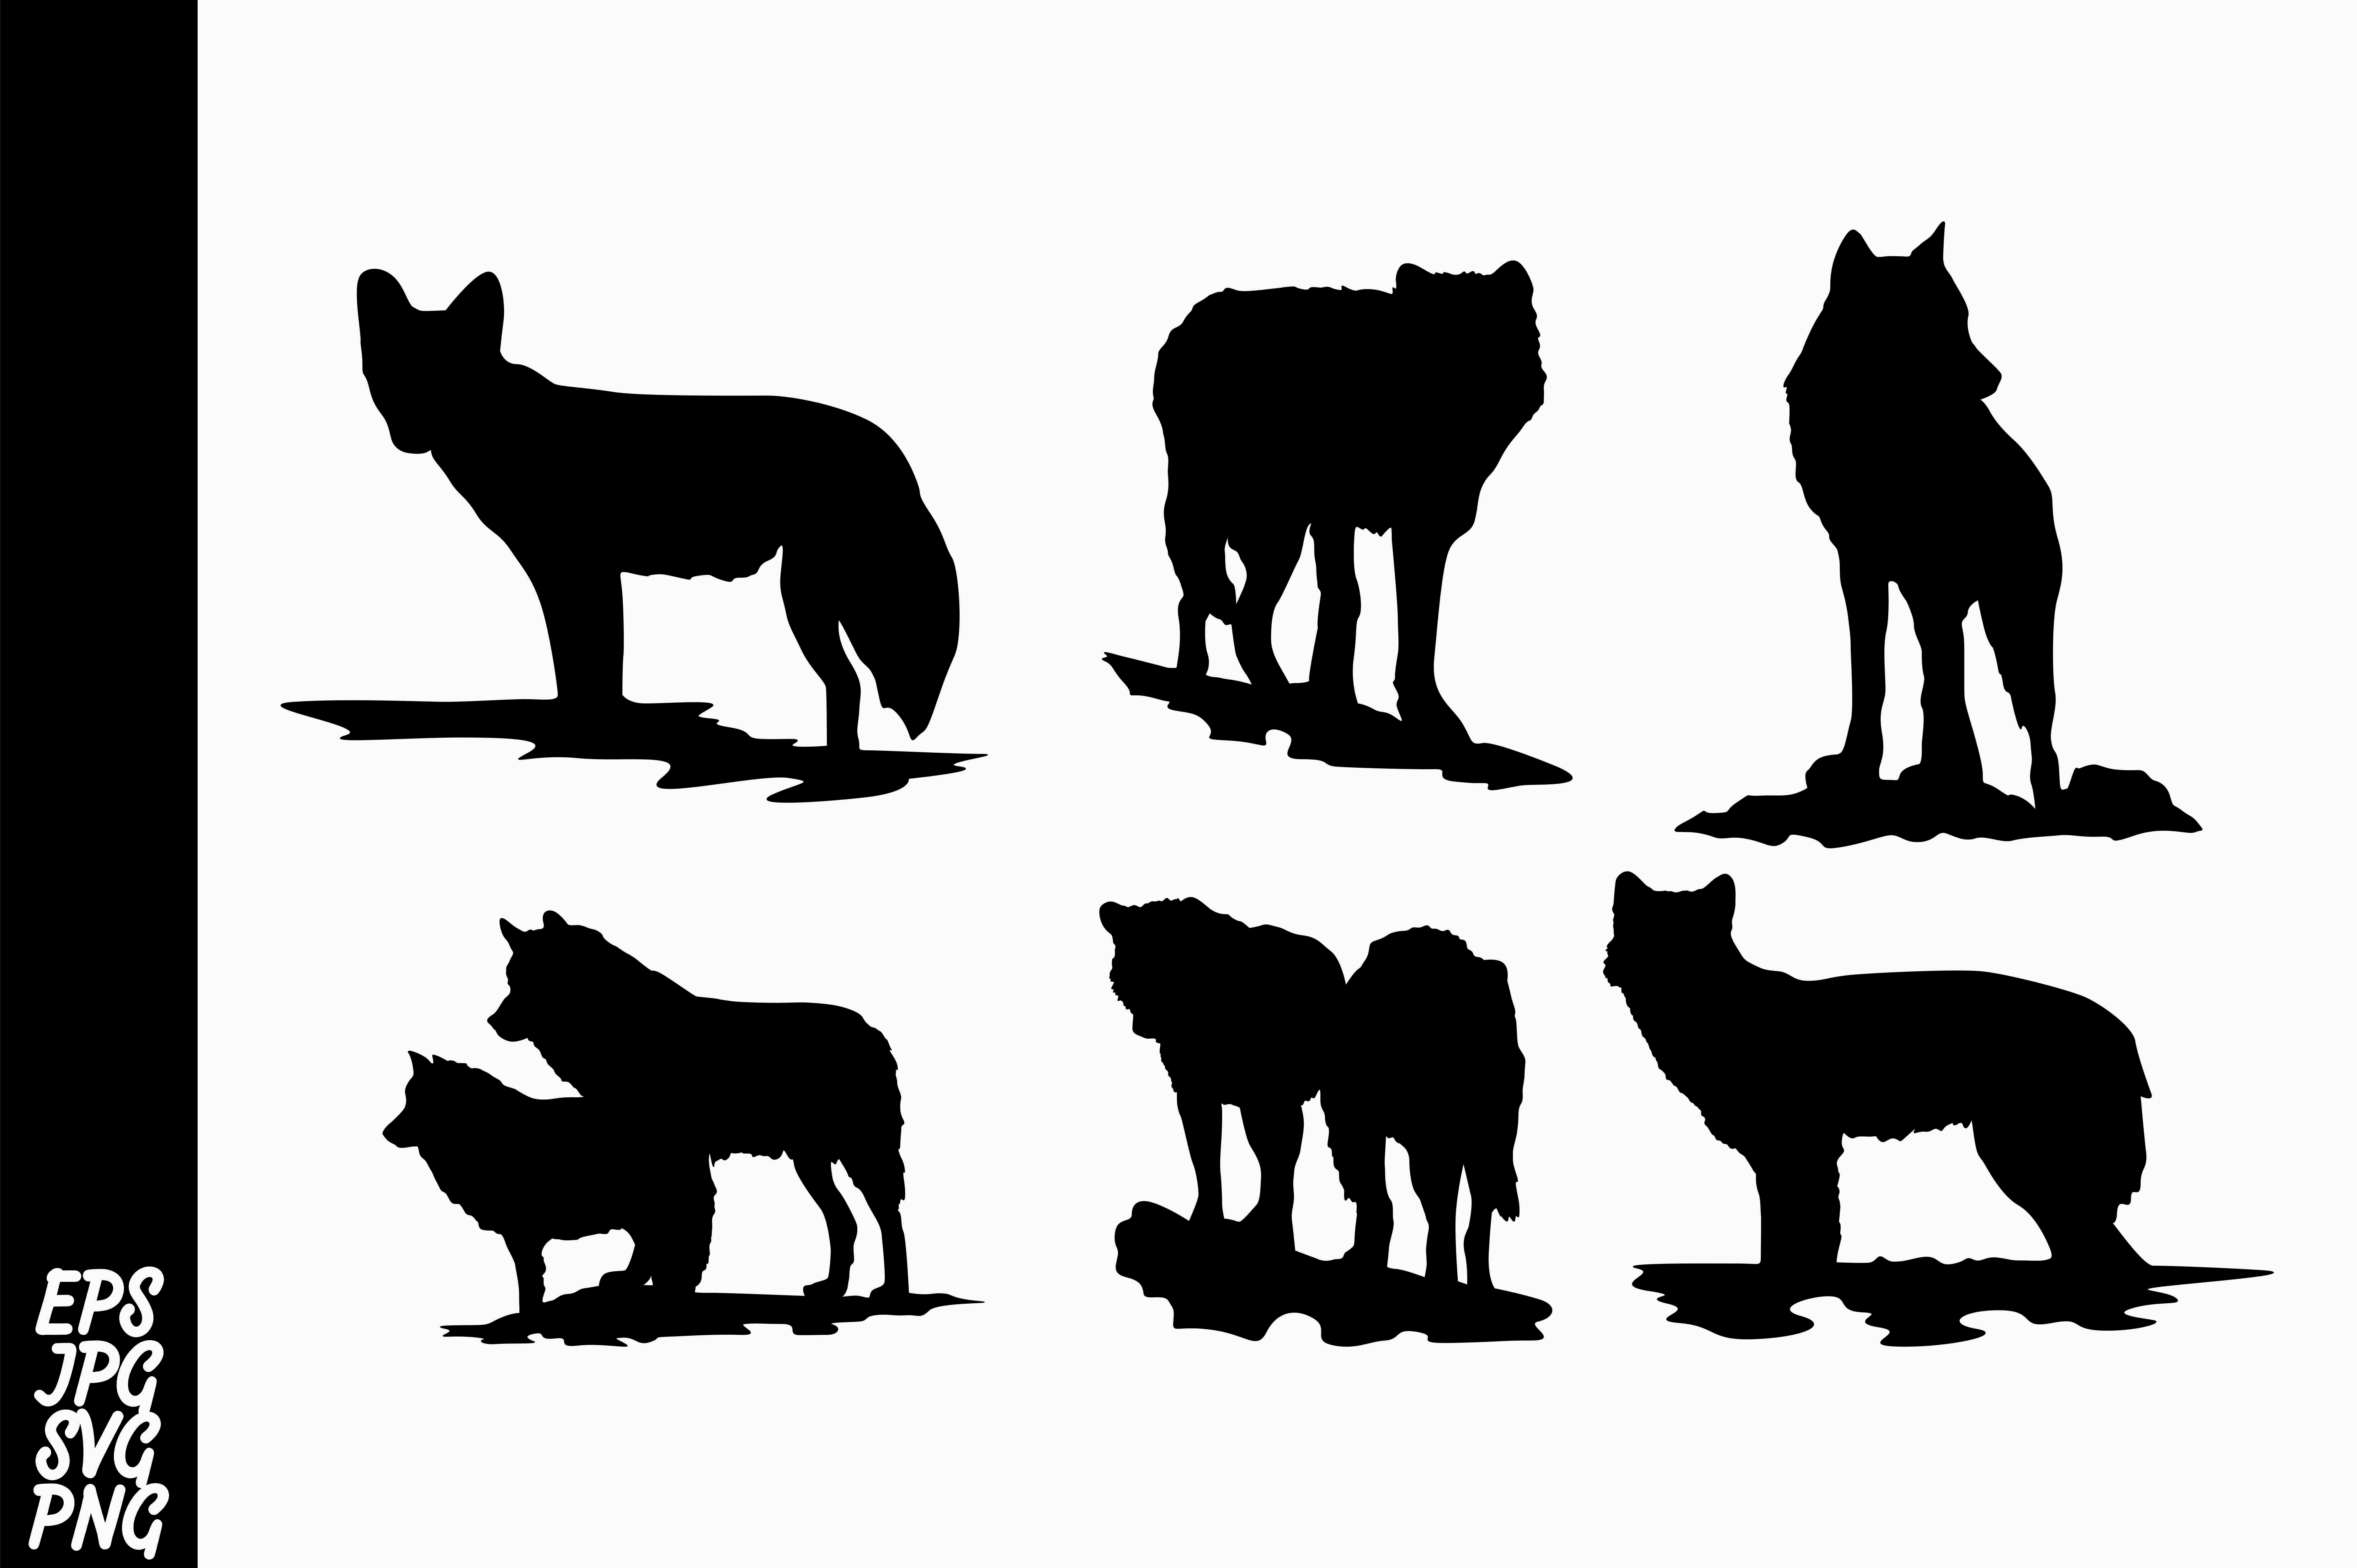 Download Free Wolf Silhouette Svg Bundle Graphic By Arief Sapta Adjie Ii for Cricut Explore, Silhouette and other cutting machines.